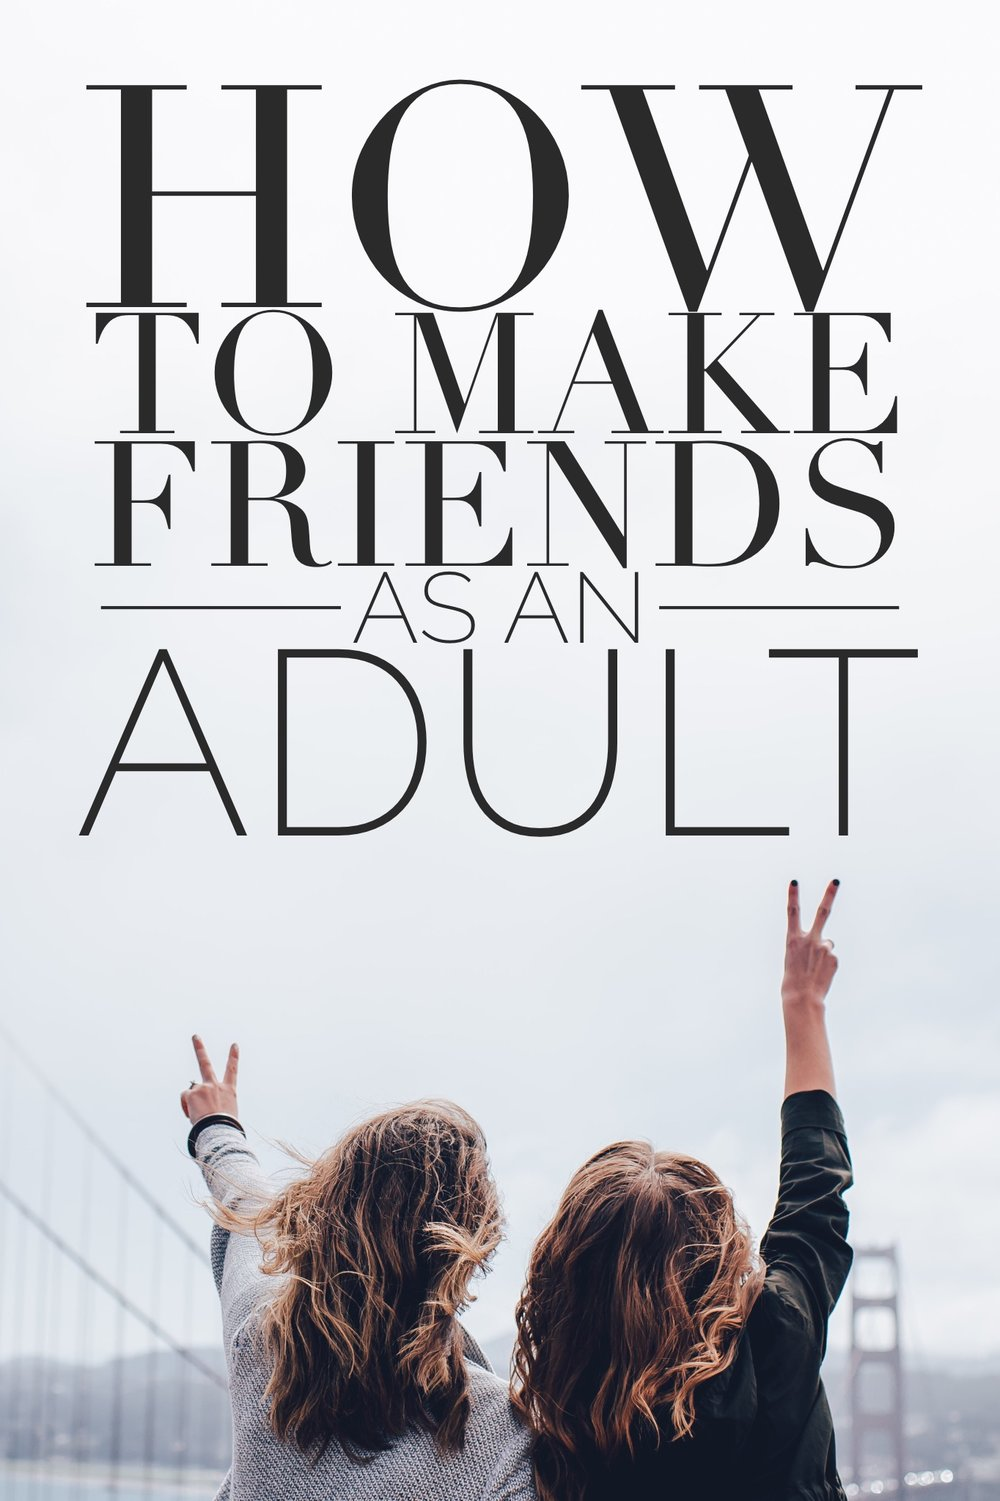 How to Make Friends as an Adult. It can be difficult to make new friends as you get older. Use these tips to find new friends and build a relationship. #lifestyle #relationships #friendship